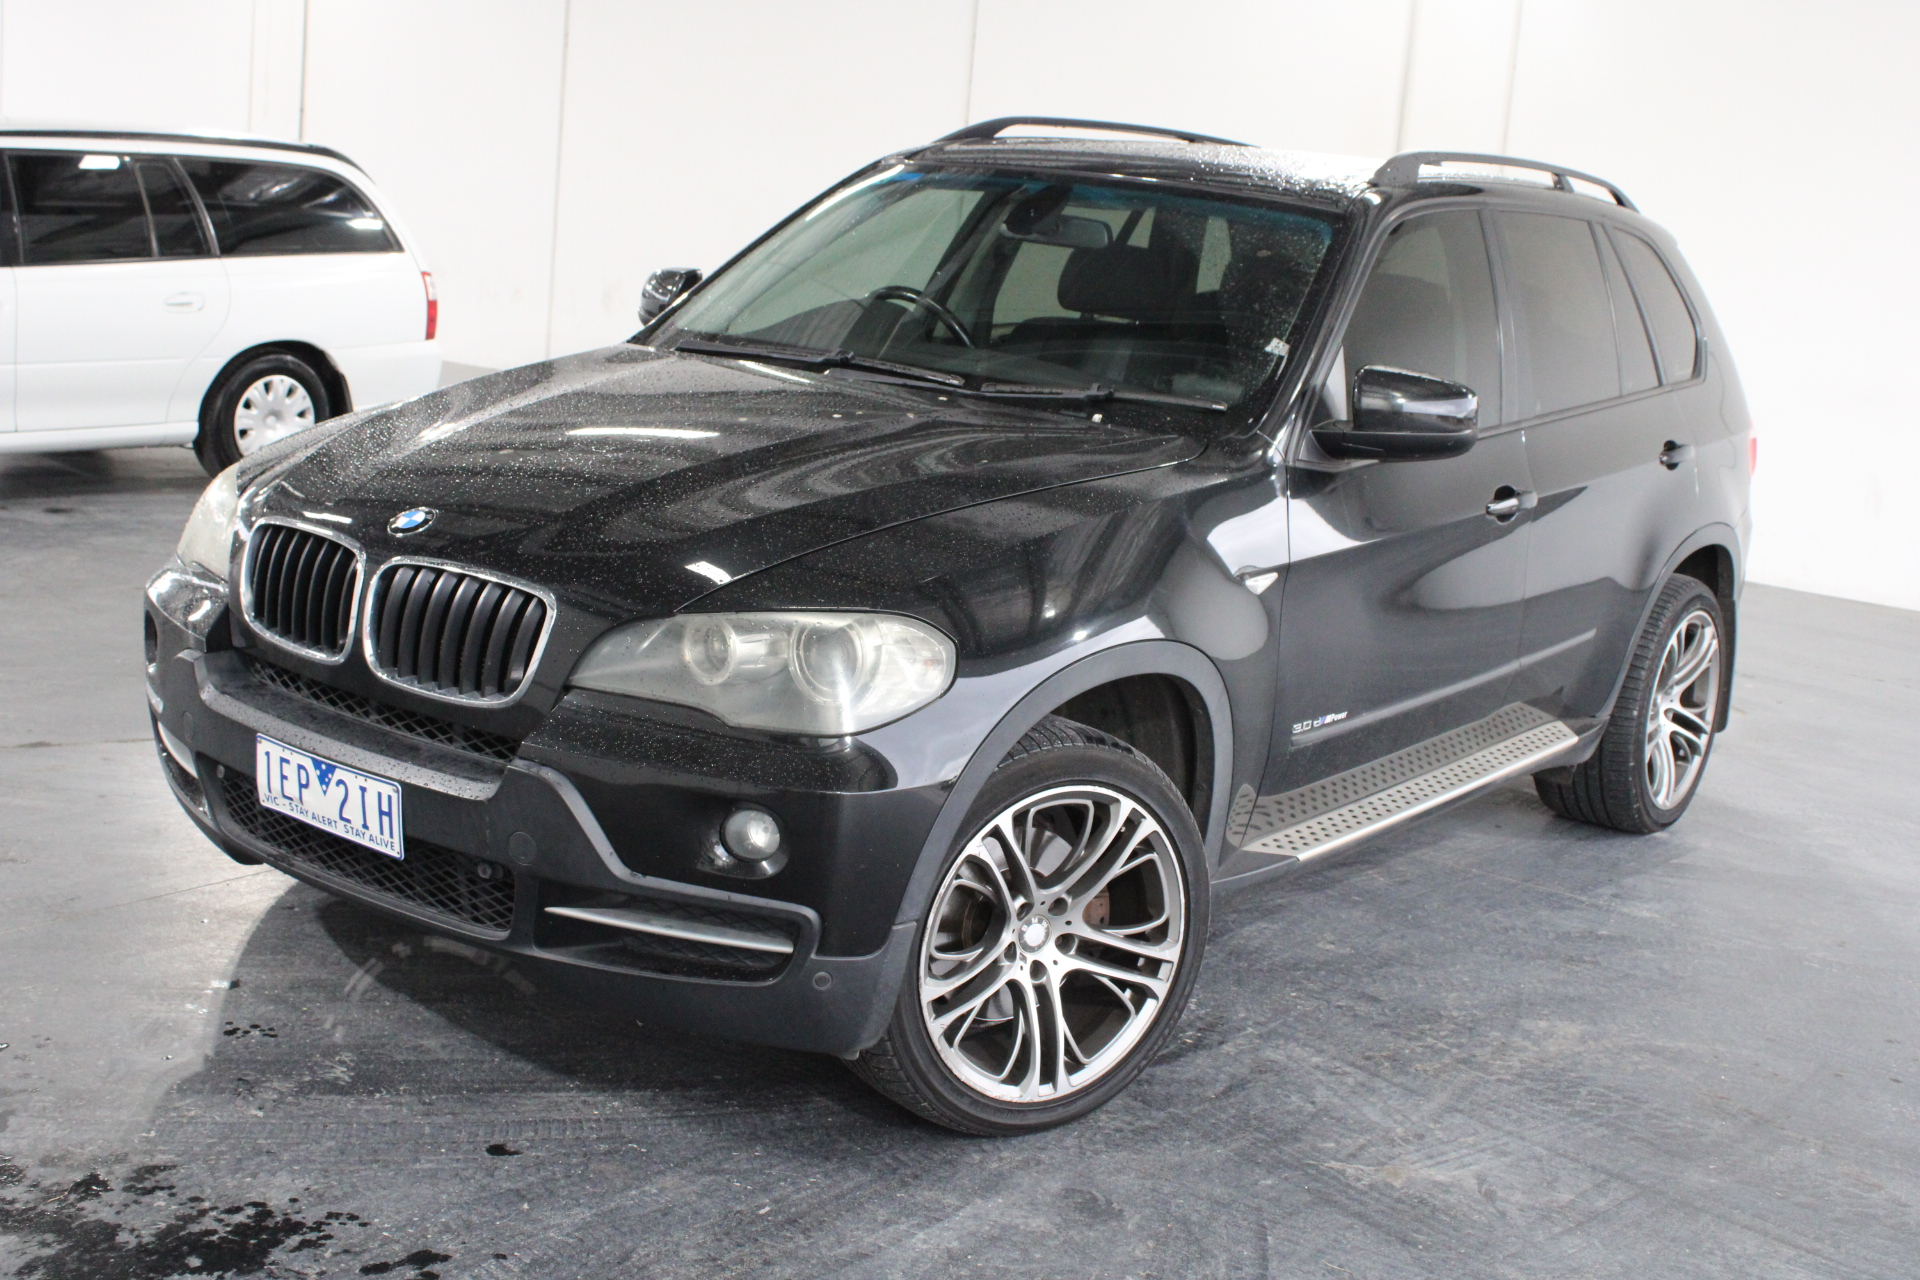 2007 BMW X5 3.0d E70 Turbo Diesel Automatic 7 Seater Wagon